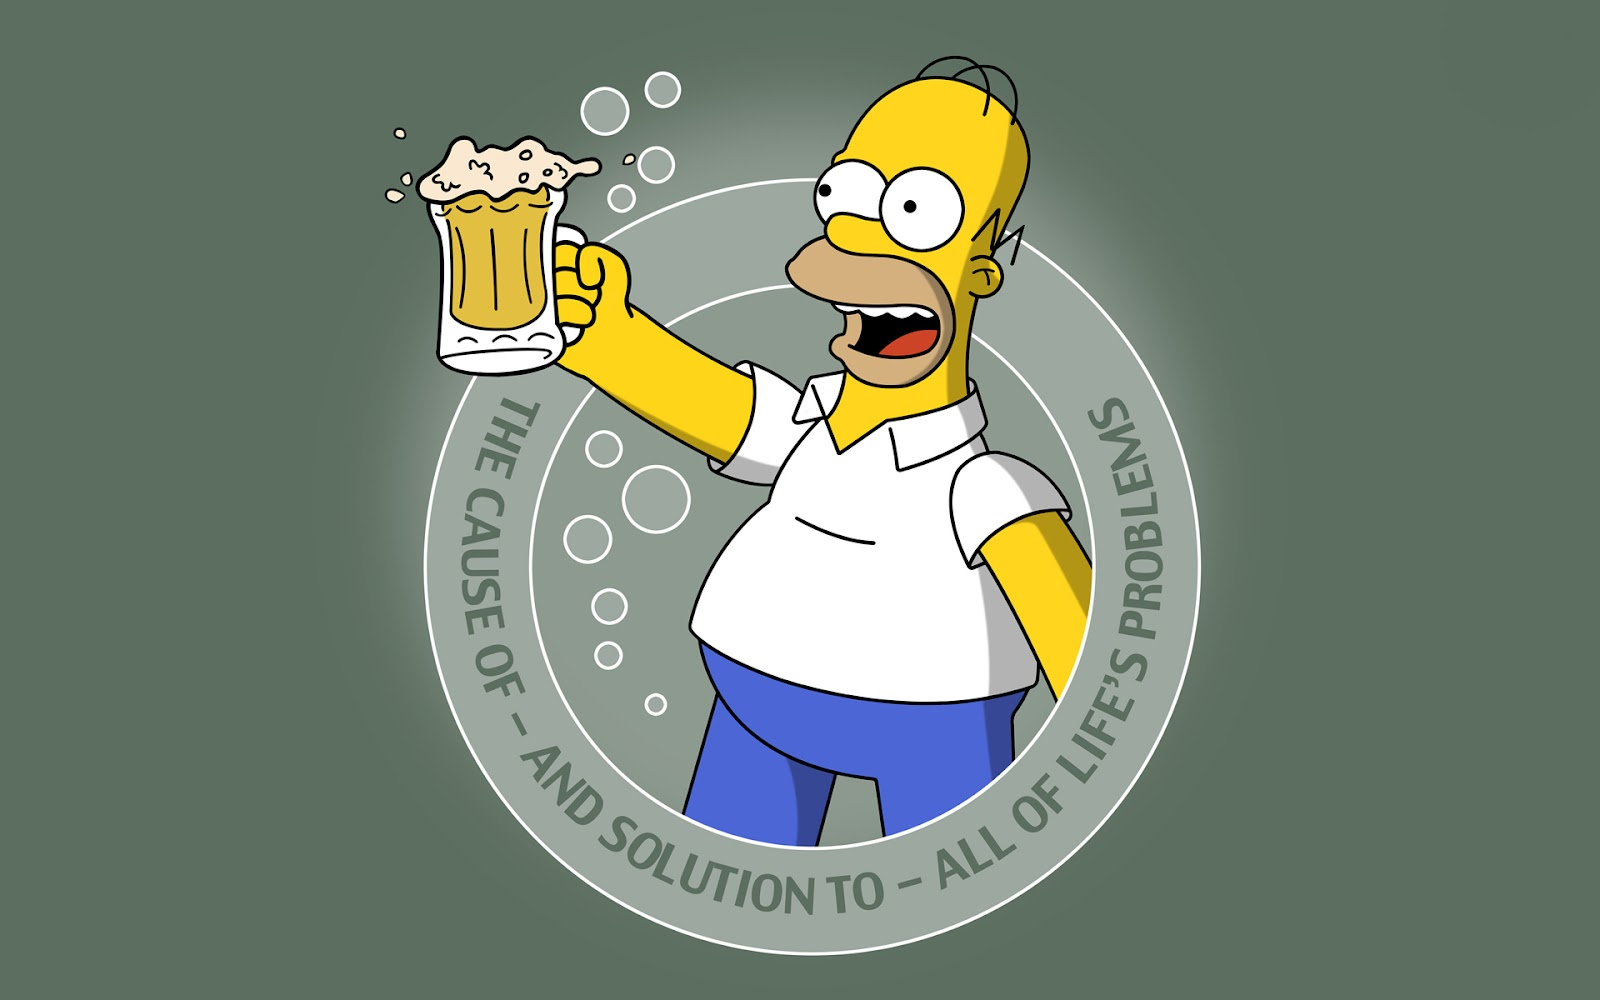 Homero Simpson Fondos Pantalla Wallpapers